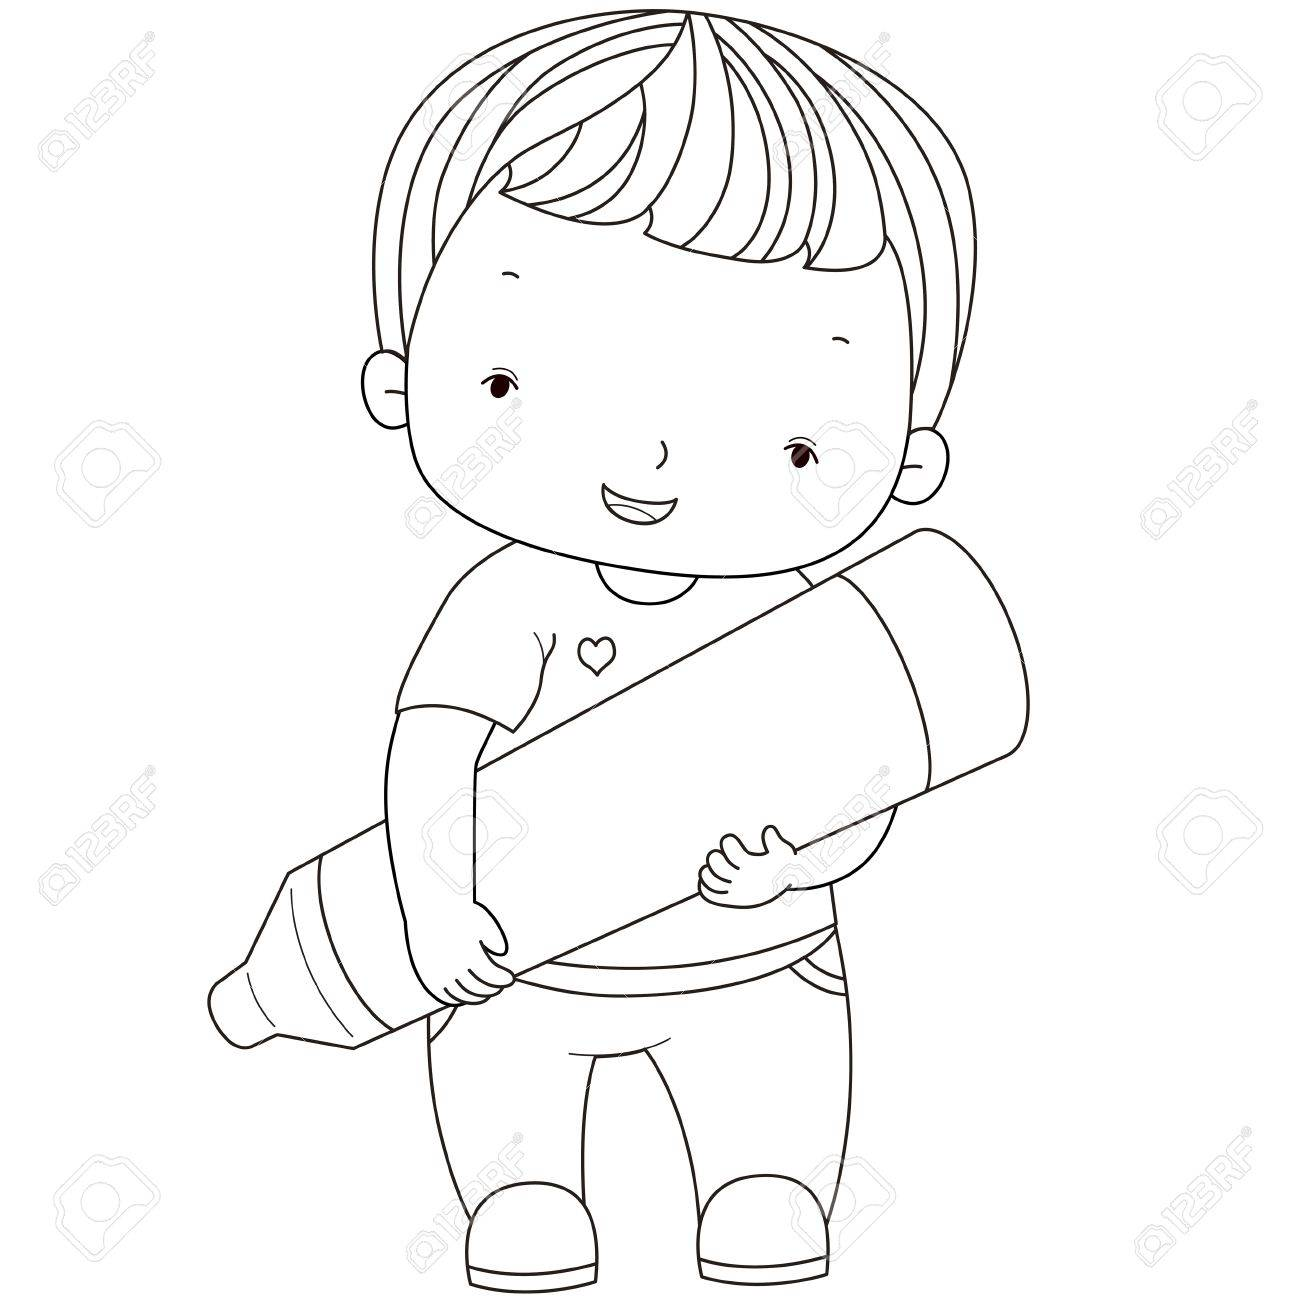 coloring illustration of a boy with crayon